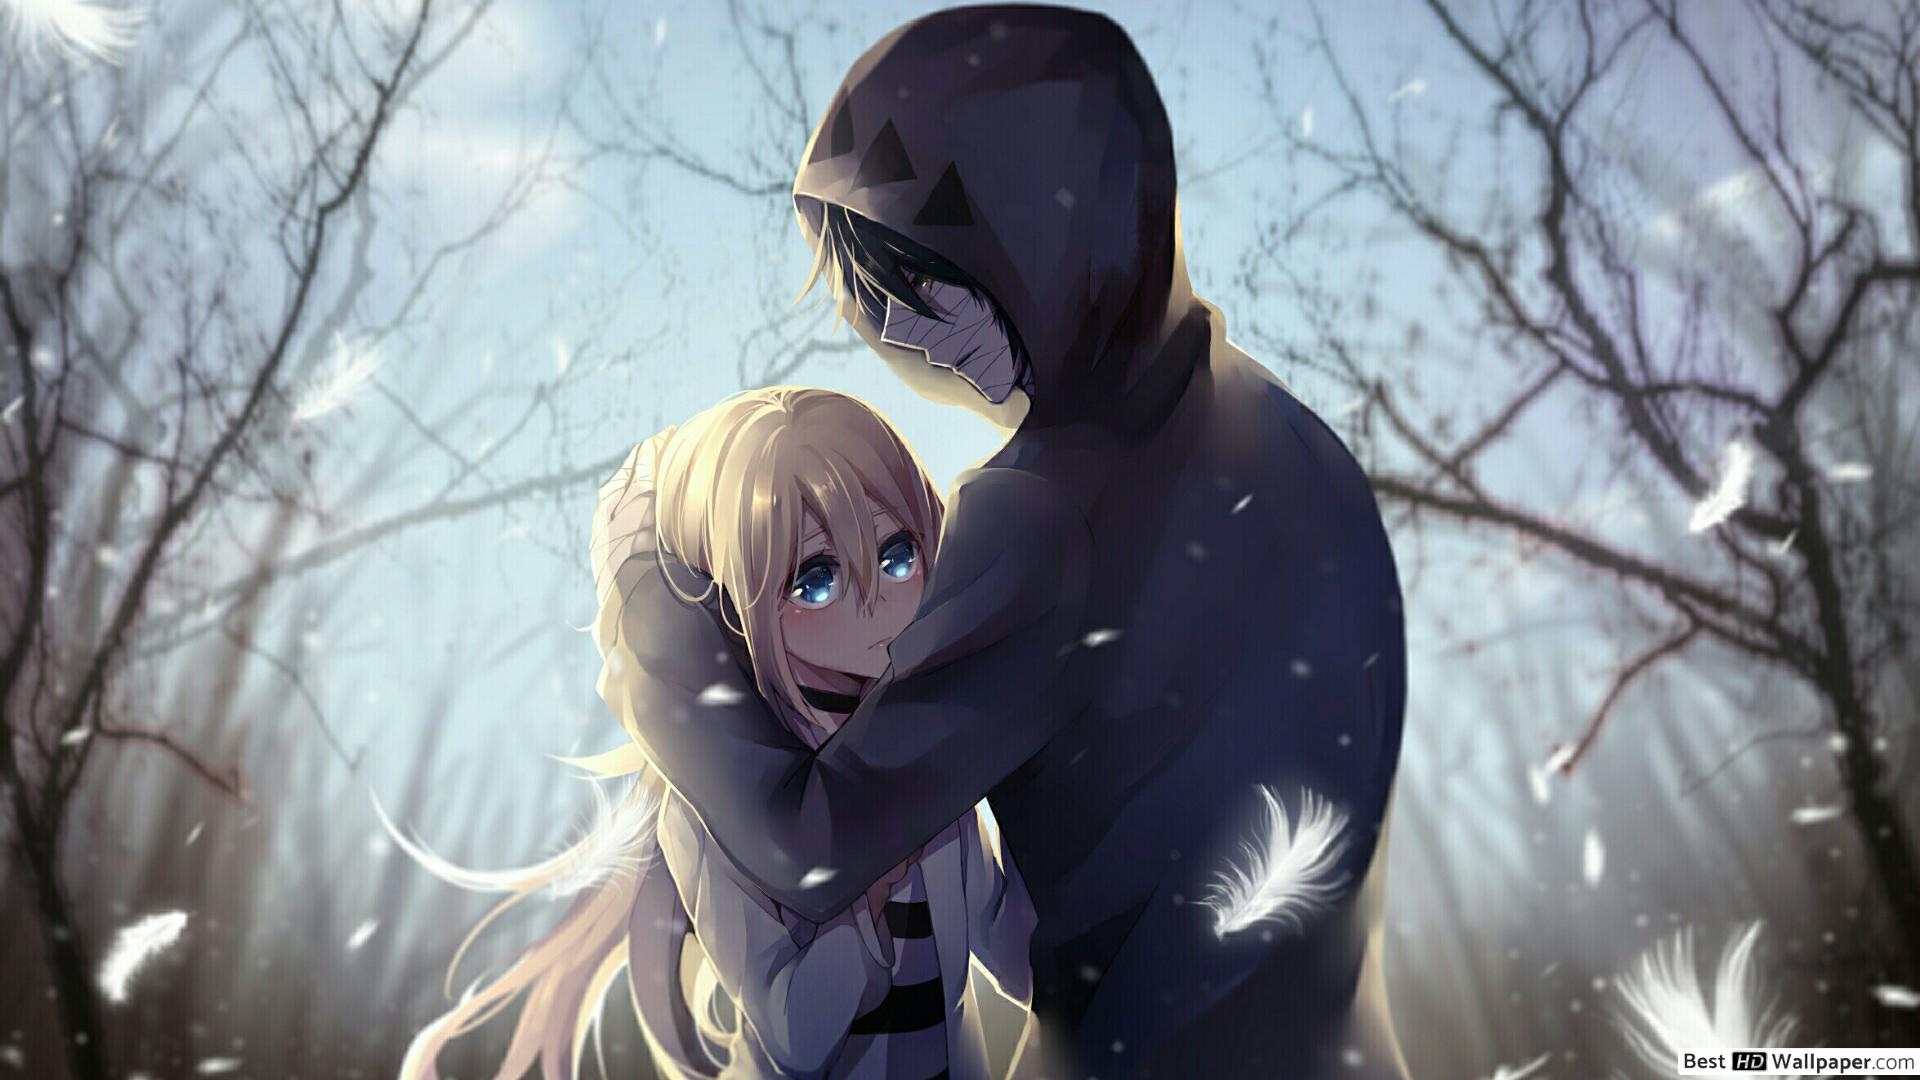 Angels Of Death Anime HD Wallpapers - Wallpaper Cave